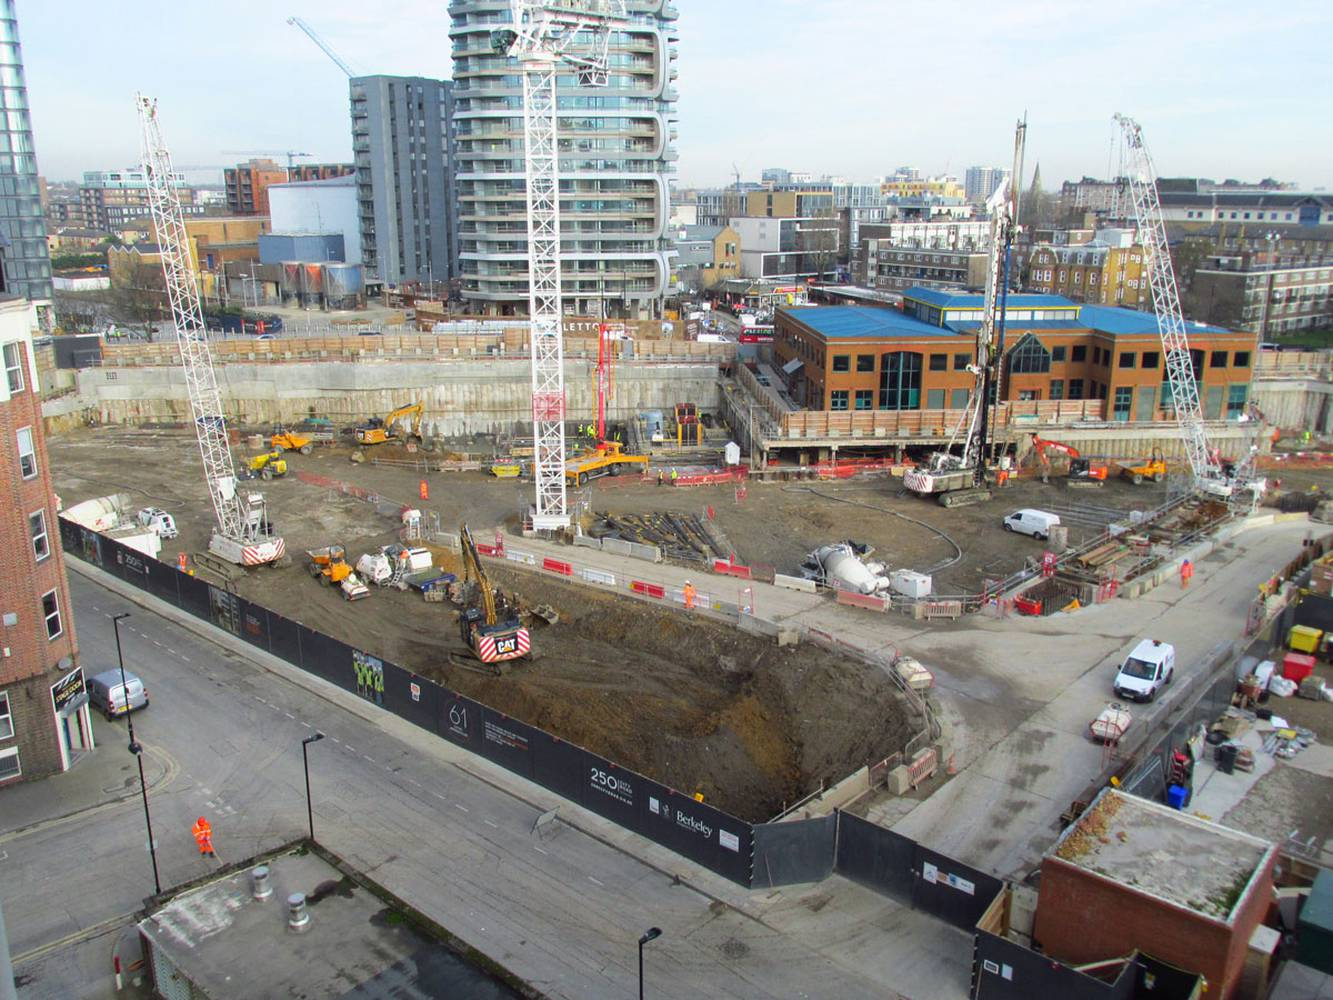 <p>Image cretid David Holt. Photo of&nbsp;Berkeley Homes 250 City Road Development, in November 2015.&nbsp;</p>